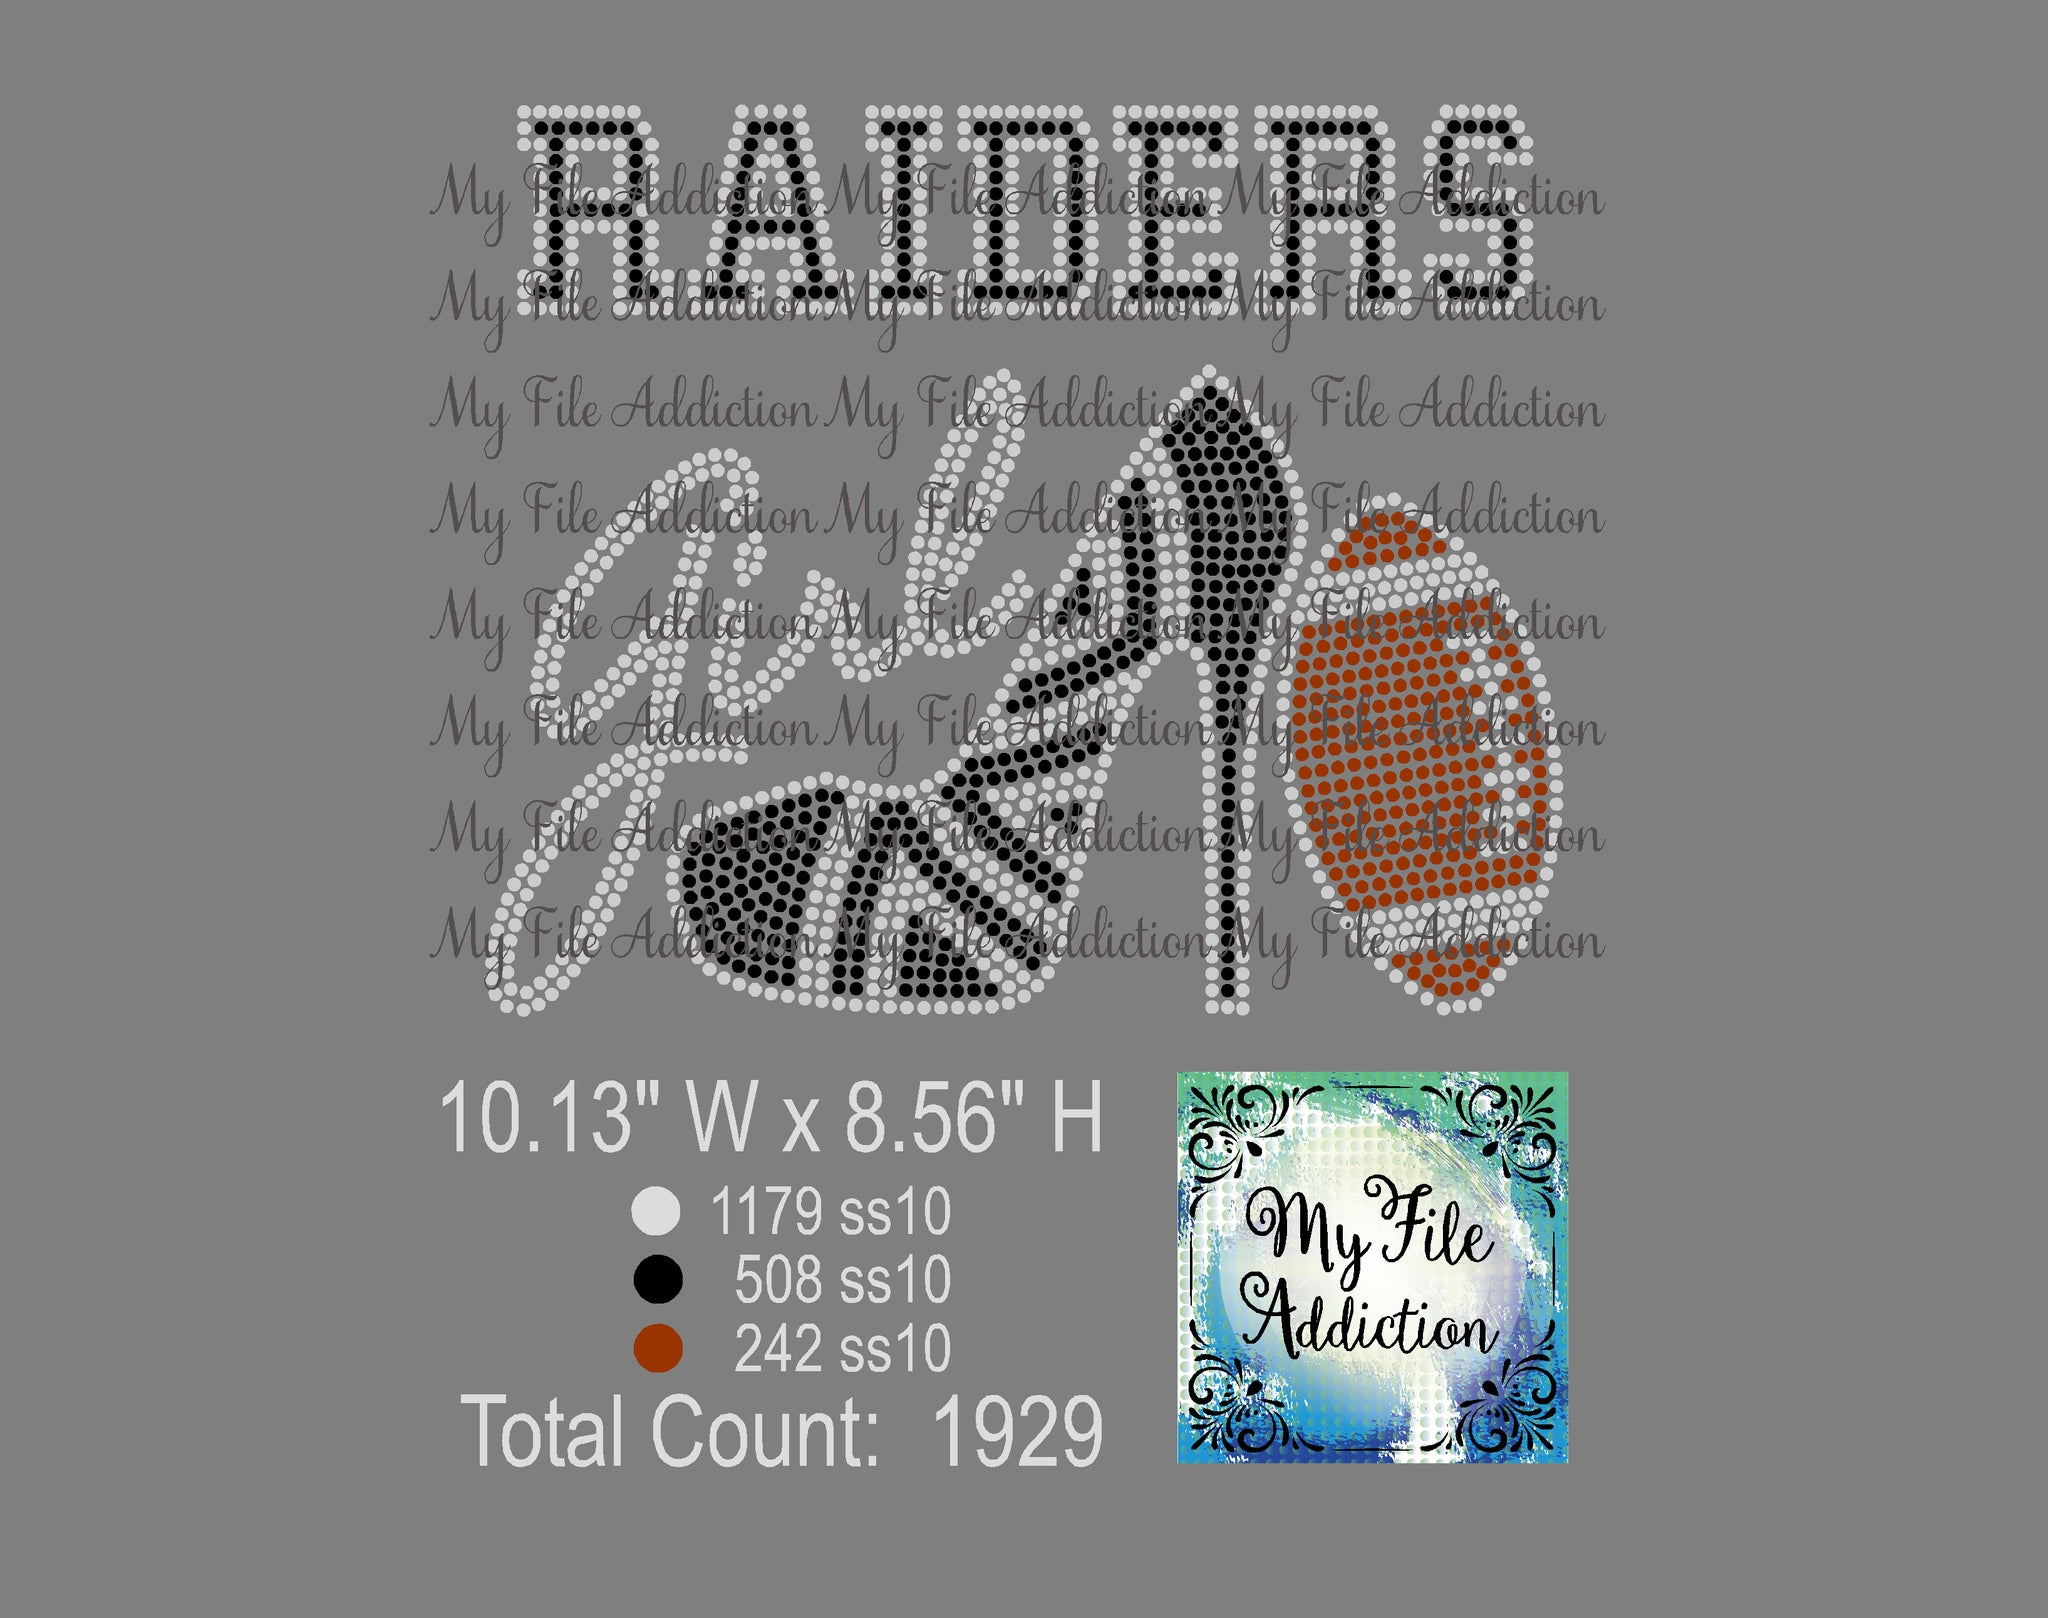 Raiders High Heel With Football Rhinestone Digital Download File - My File Addiction